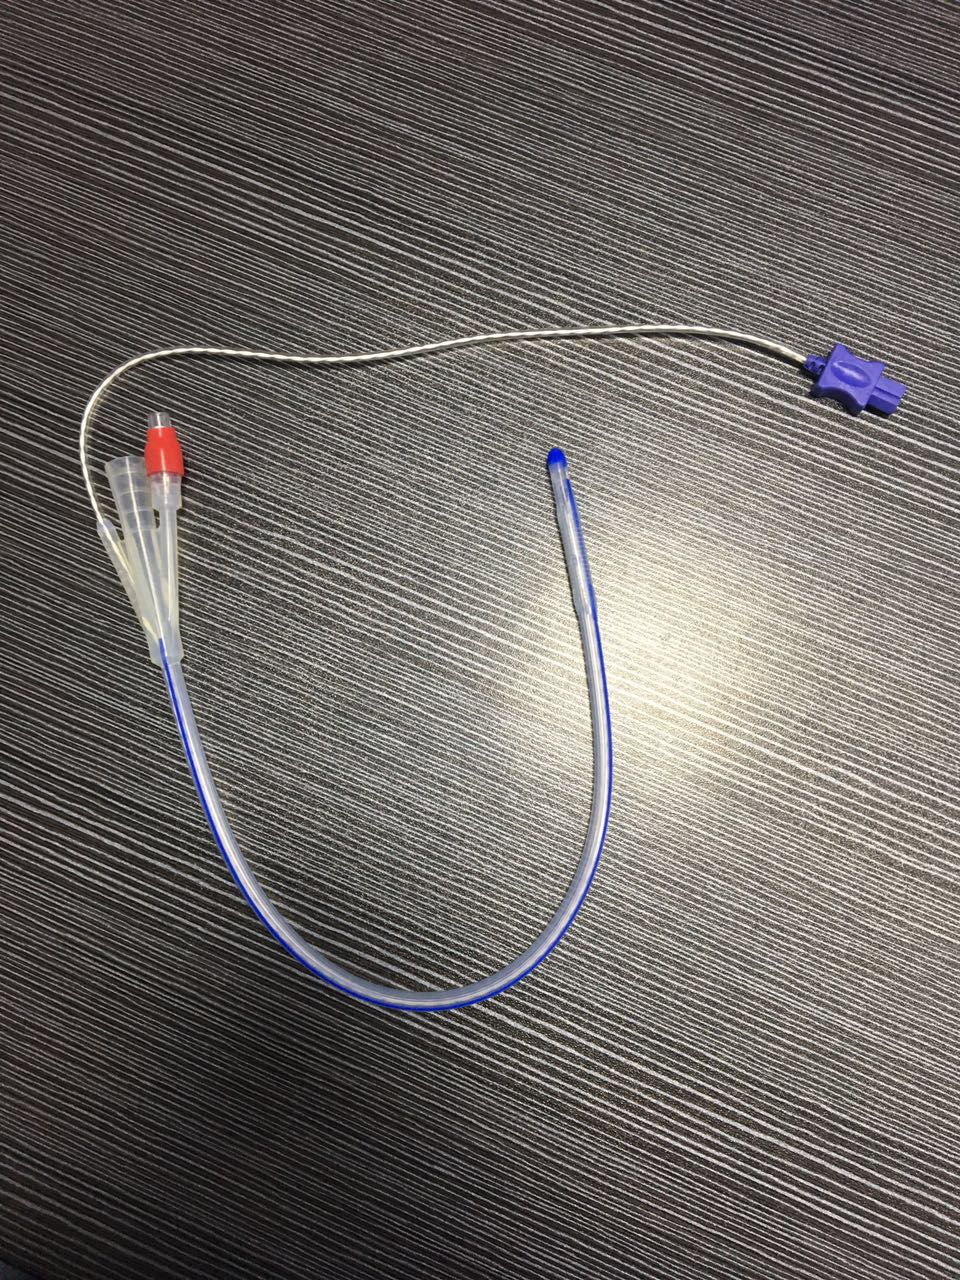 Factory supply disposable foley catheter with temperature probe, 400 or 700 series